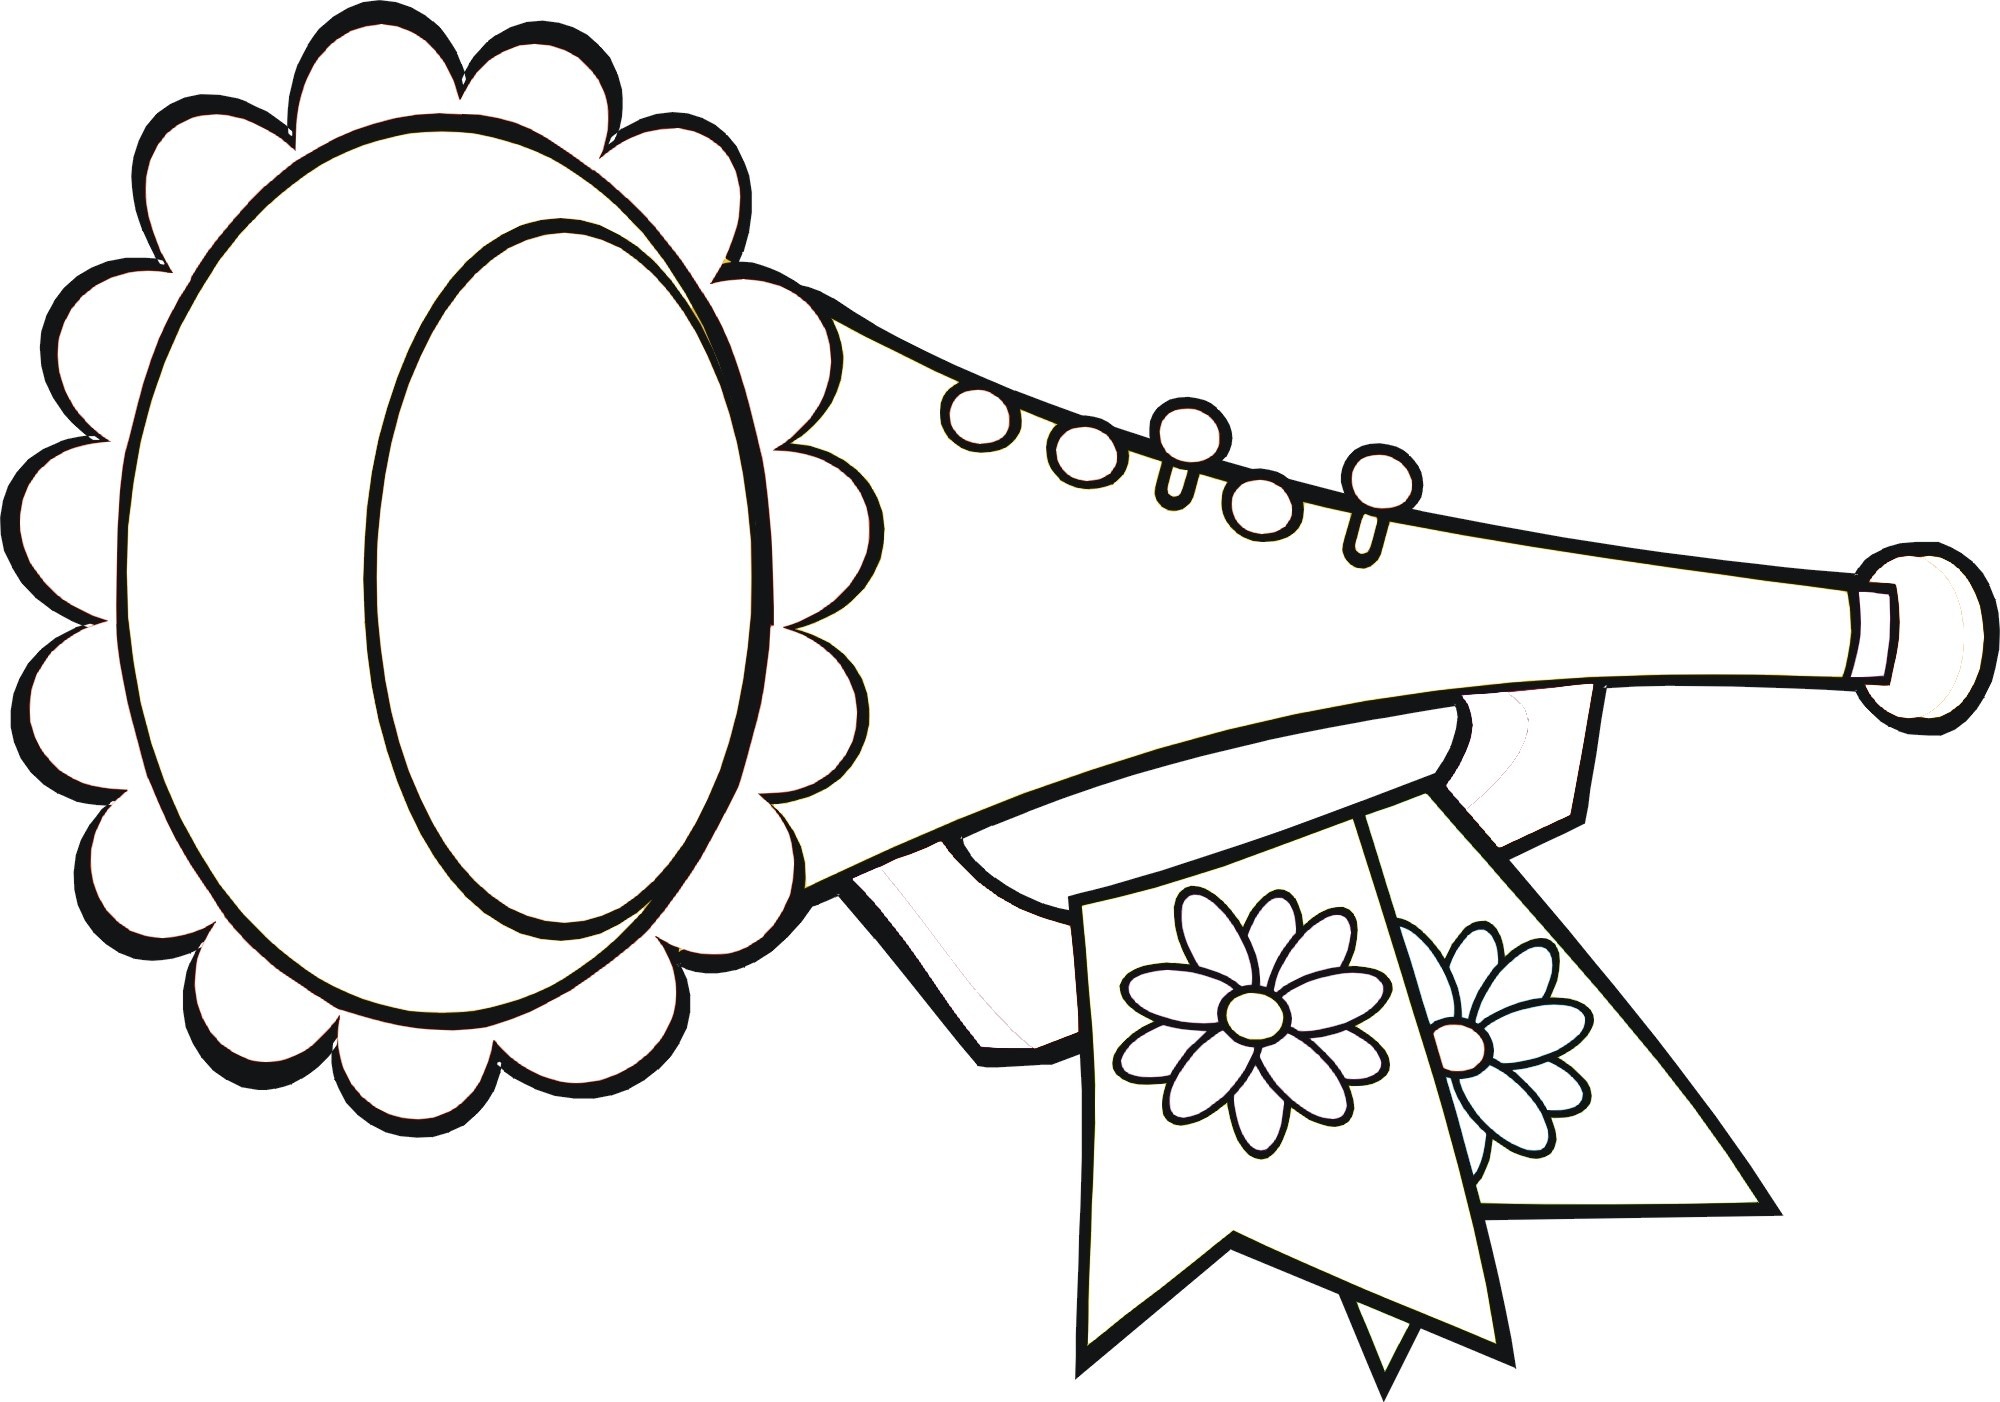 trumpet coloring page - simple trumpet sketch templates